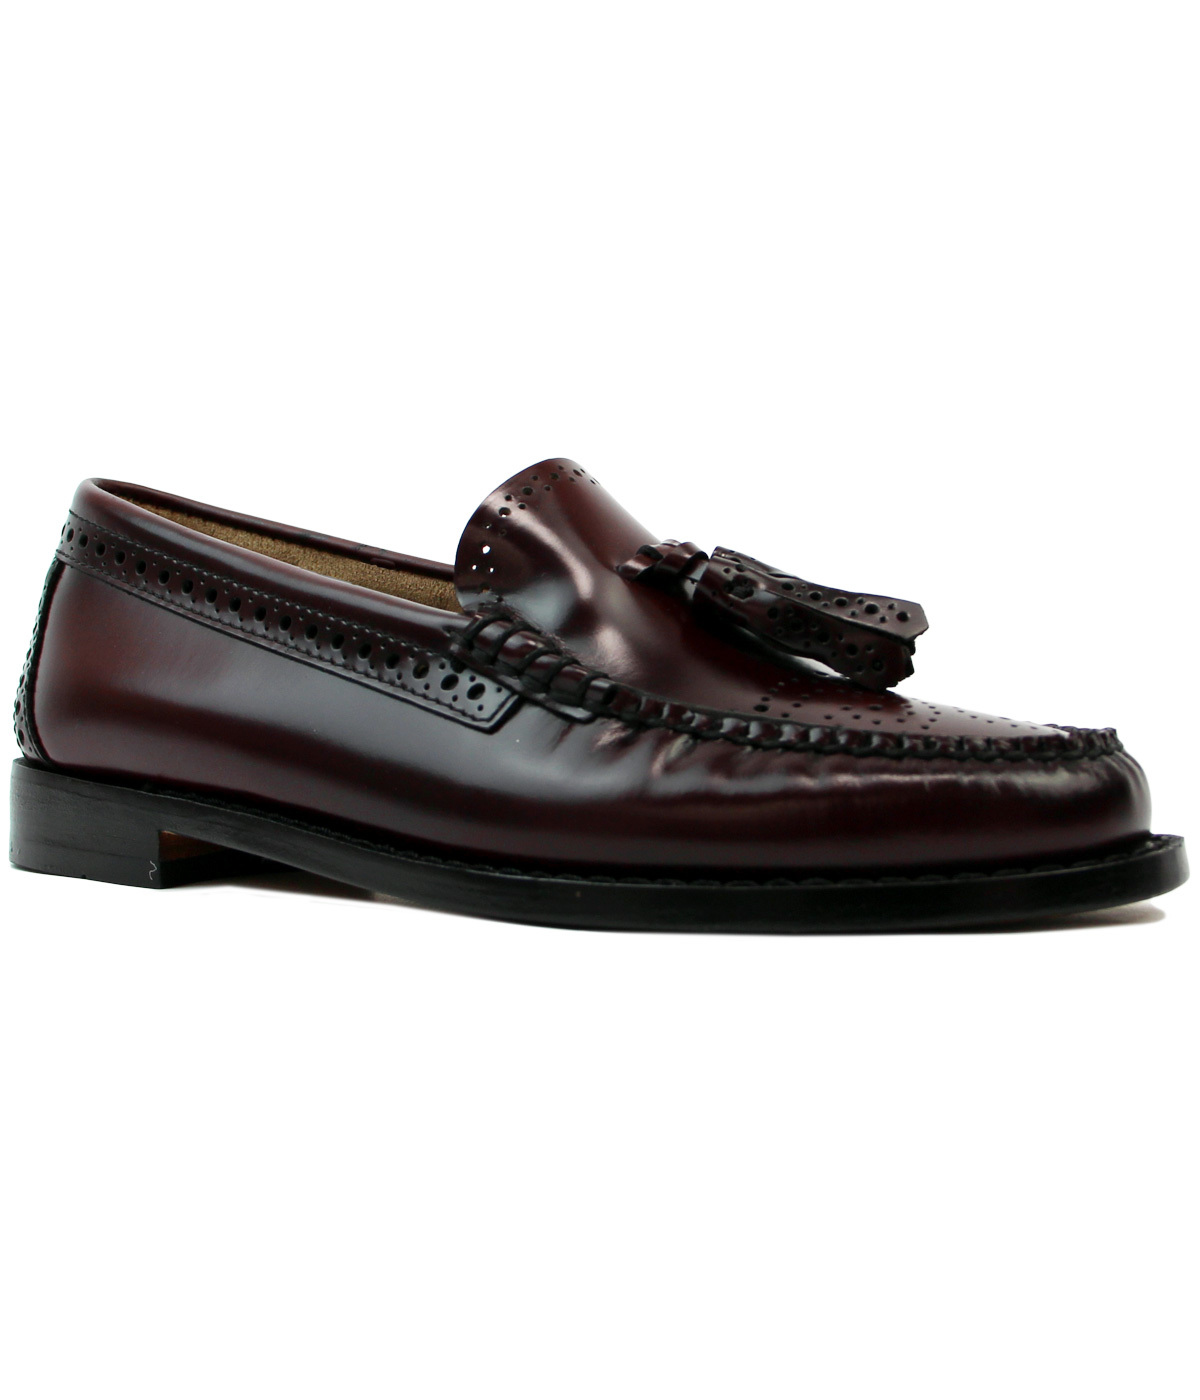 Estelle BASS WEEJUNS Retro Mod 60s Brogue Loafers